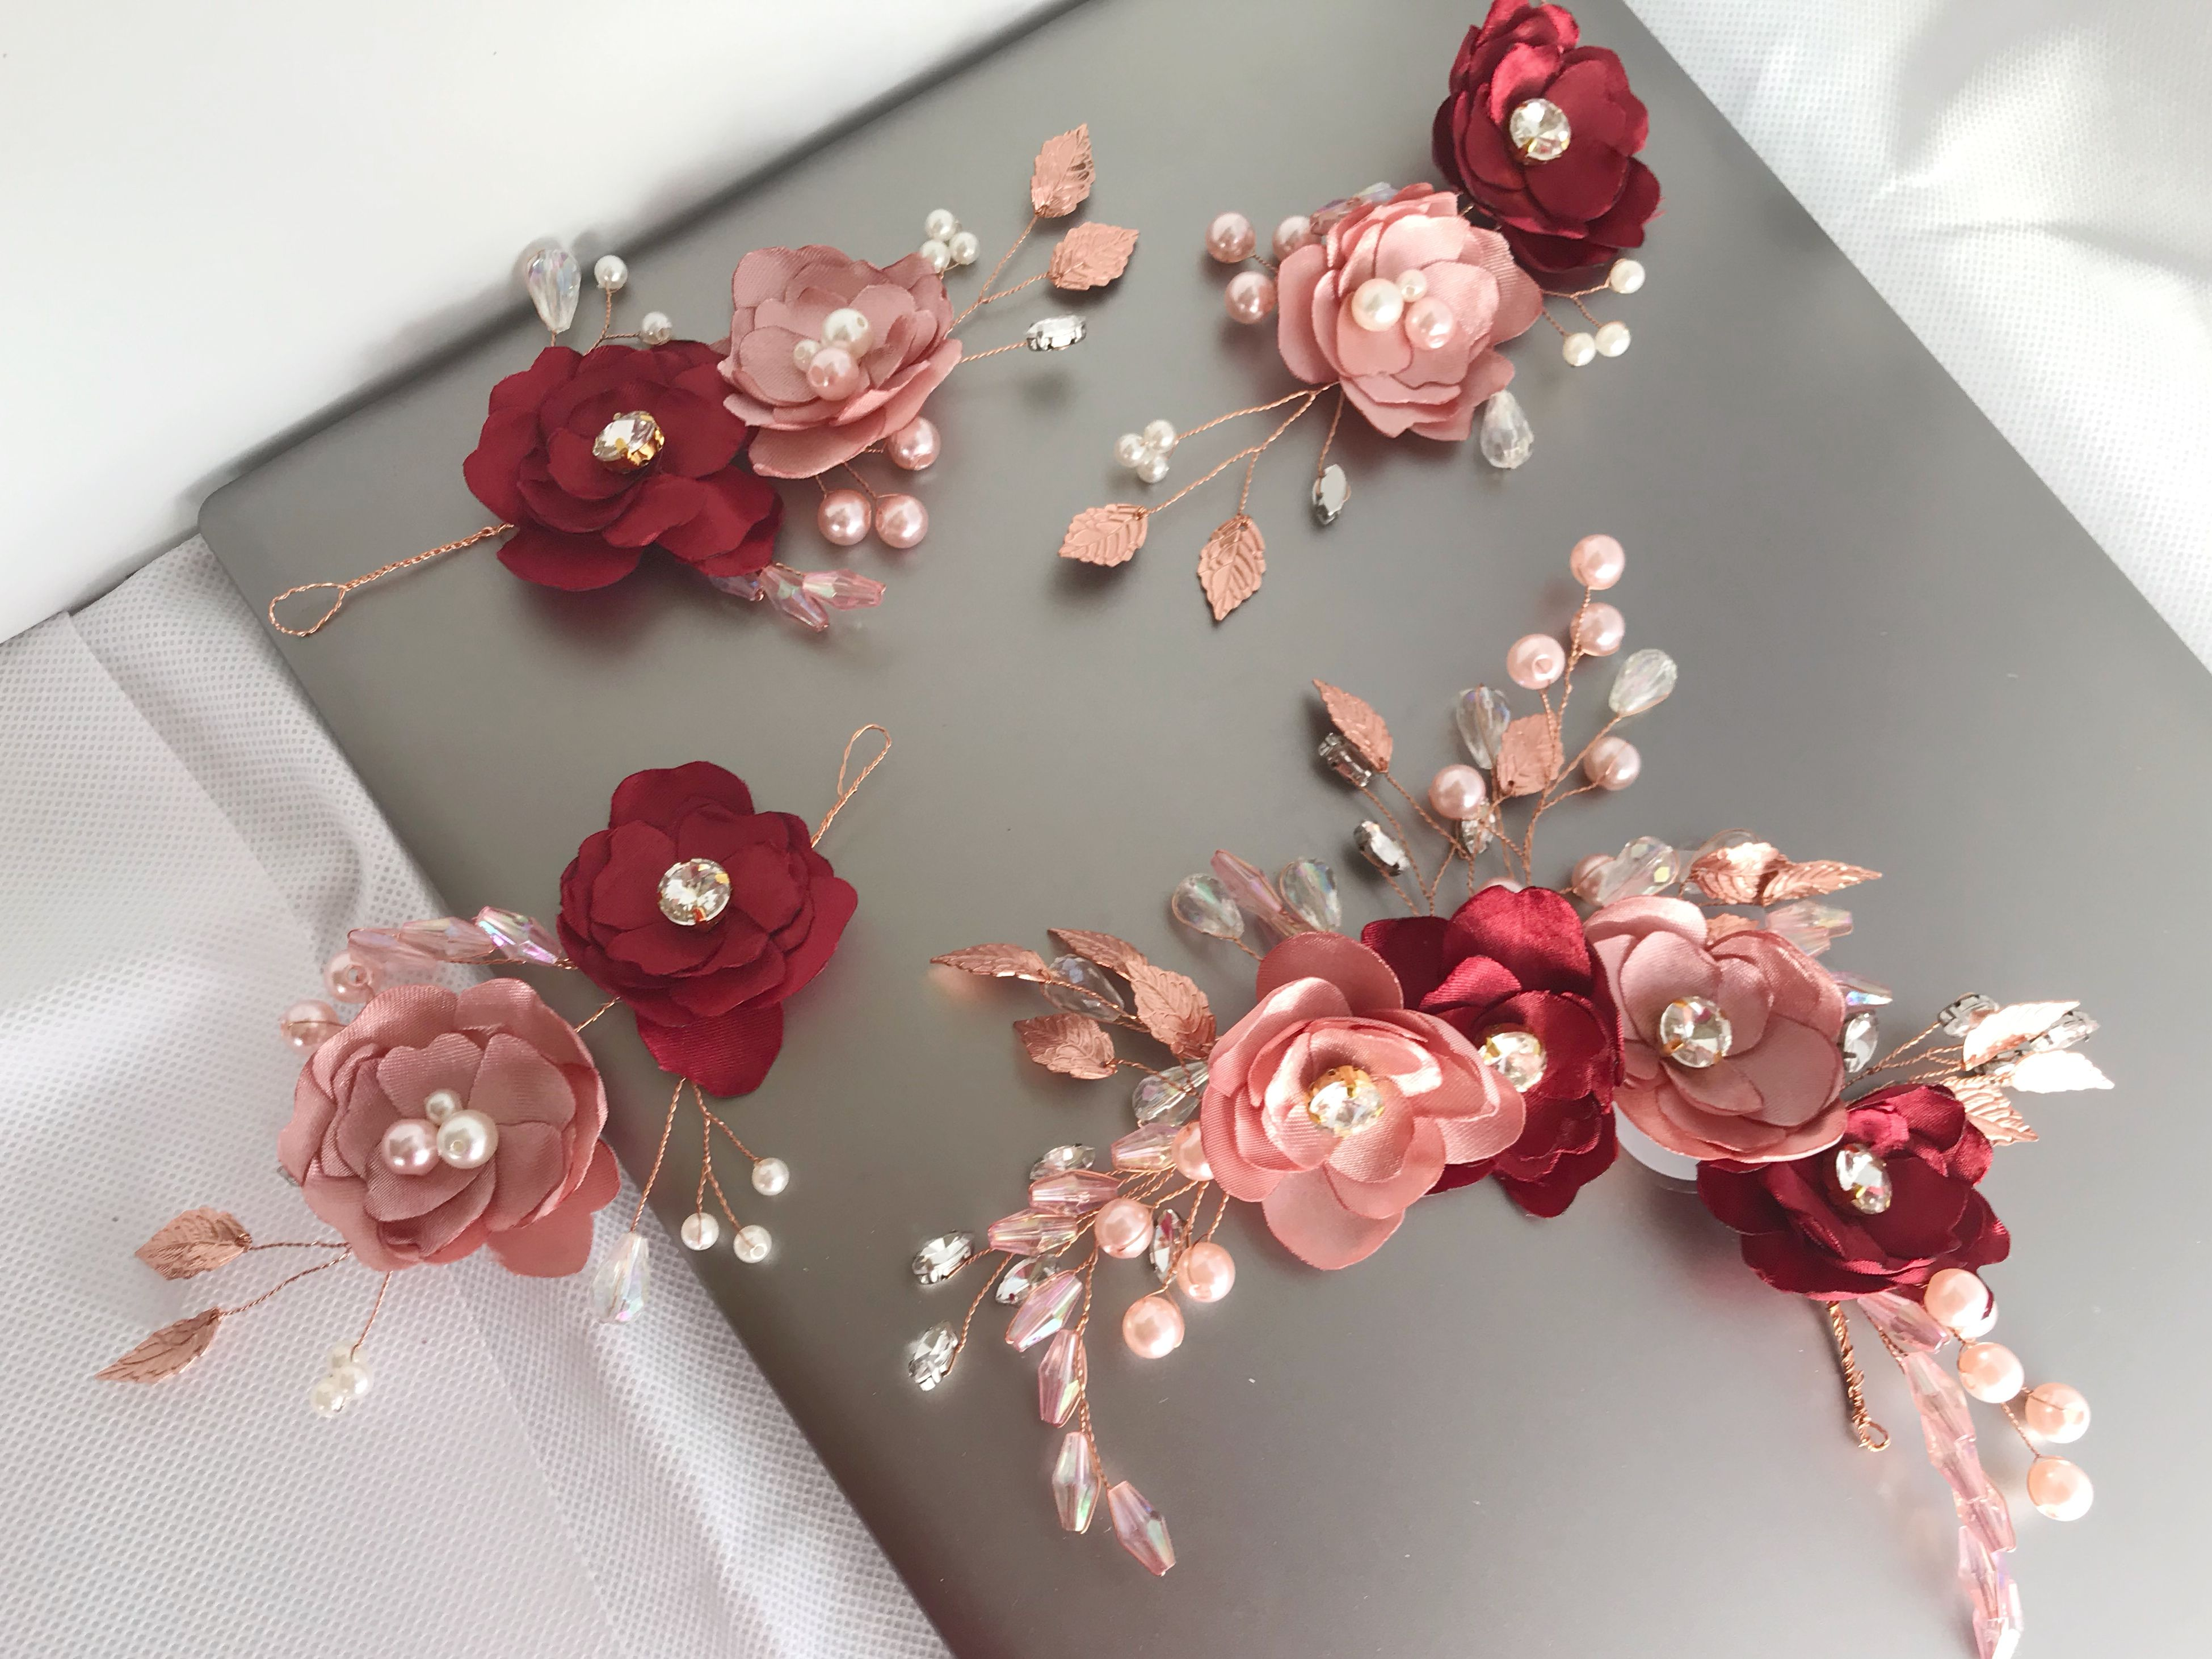 A Set Of 4 Bridal And Bridesmaid Hair Accessories Dusky Pink And Maroon Flower Hair Piece Bridesmaid Hair Accessories Bridesmaid Hair Flower Hair Pieces